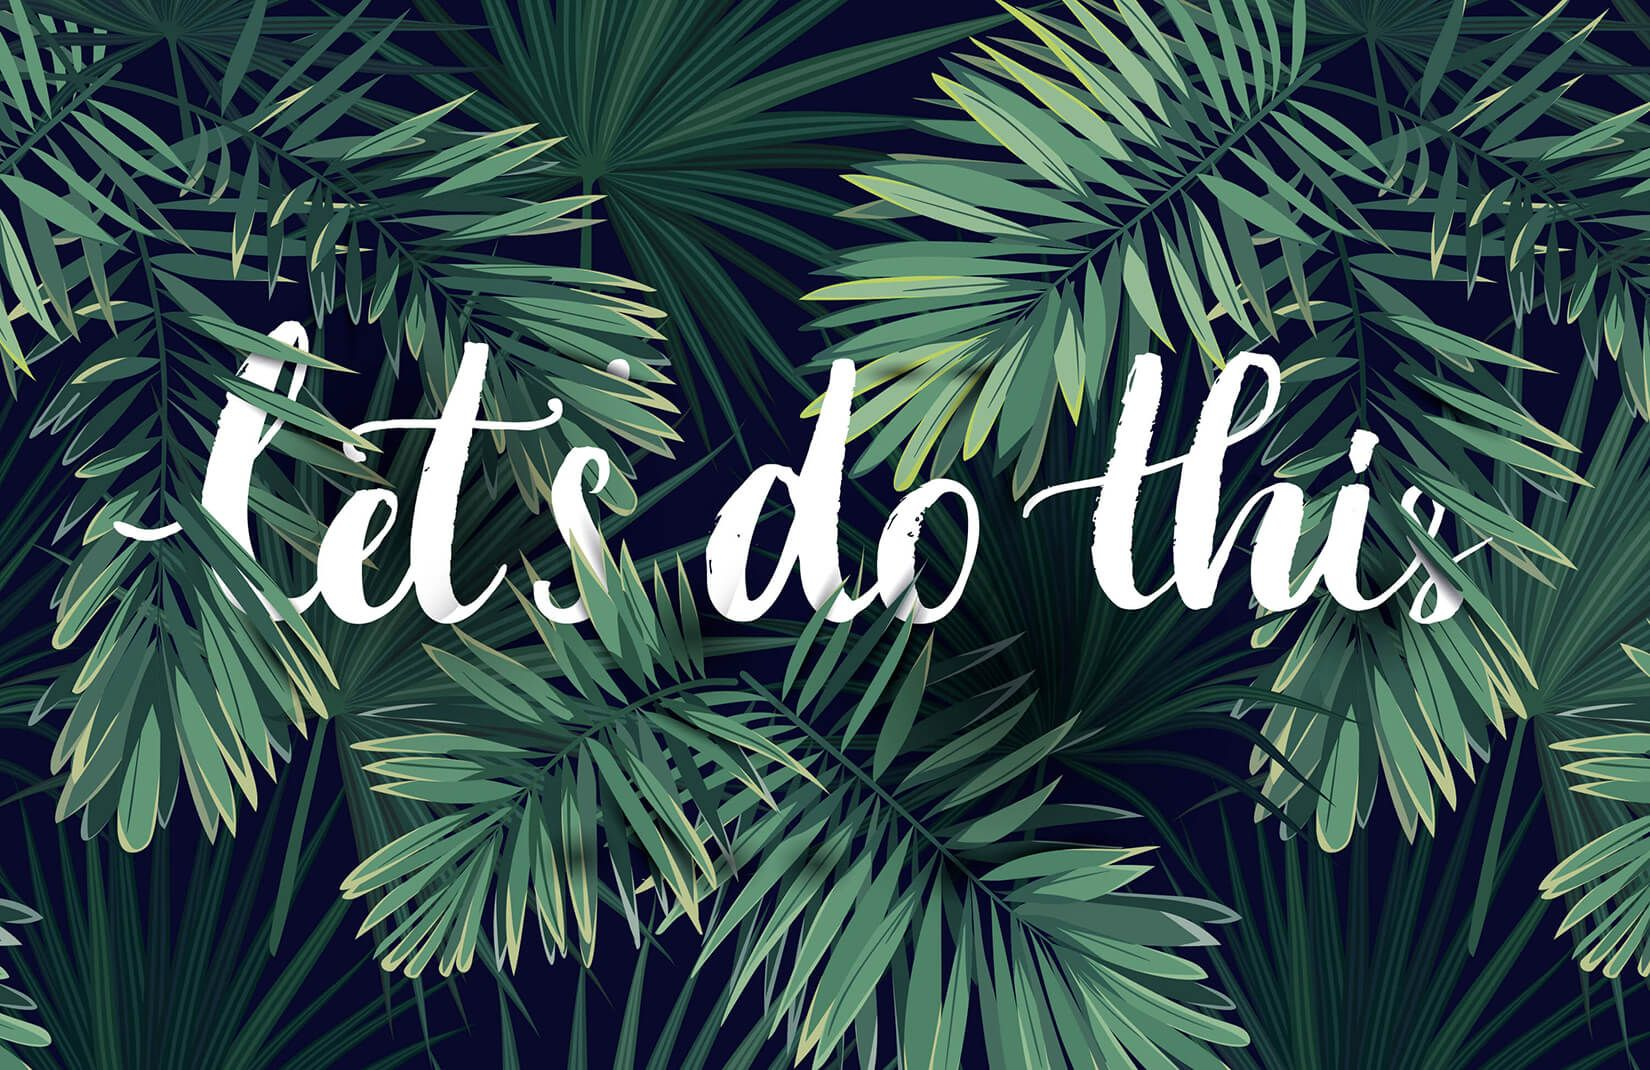 Let S Do This Motivational Wallpaper With Images Computer